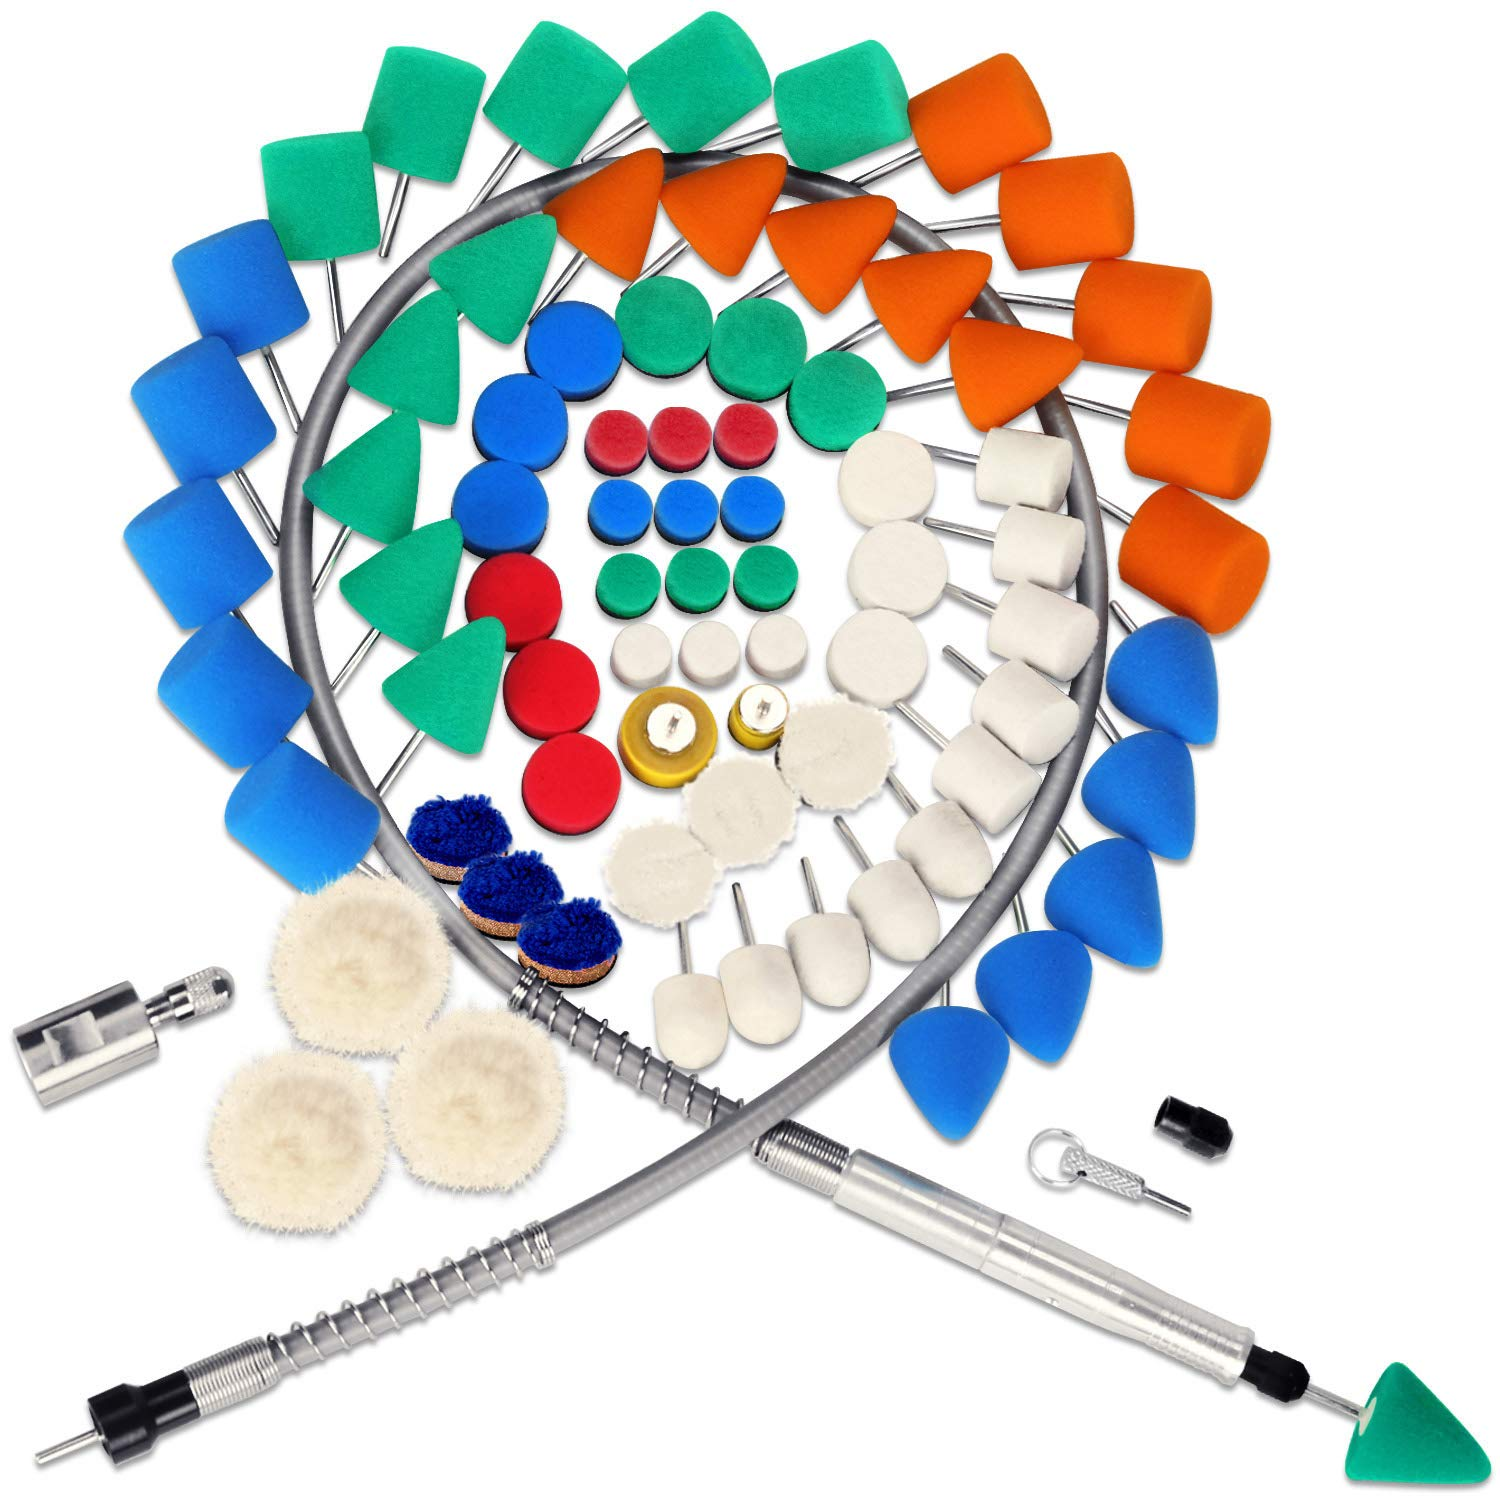 SPTA 78Pcs Mini Detail Polisher With Assorted Pads Polishing Foam Pad Kit, Used on Rotary tools/Polisher, Electric Drill for RMetal Aluminum, Stainless Steel, Chrome, Jewelry, Plastic, Ceramic, Glass